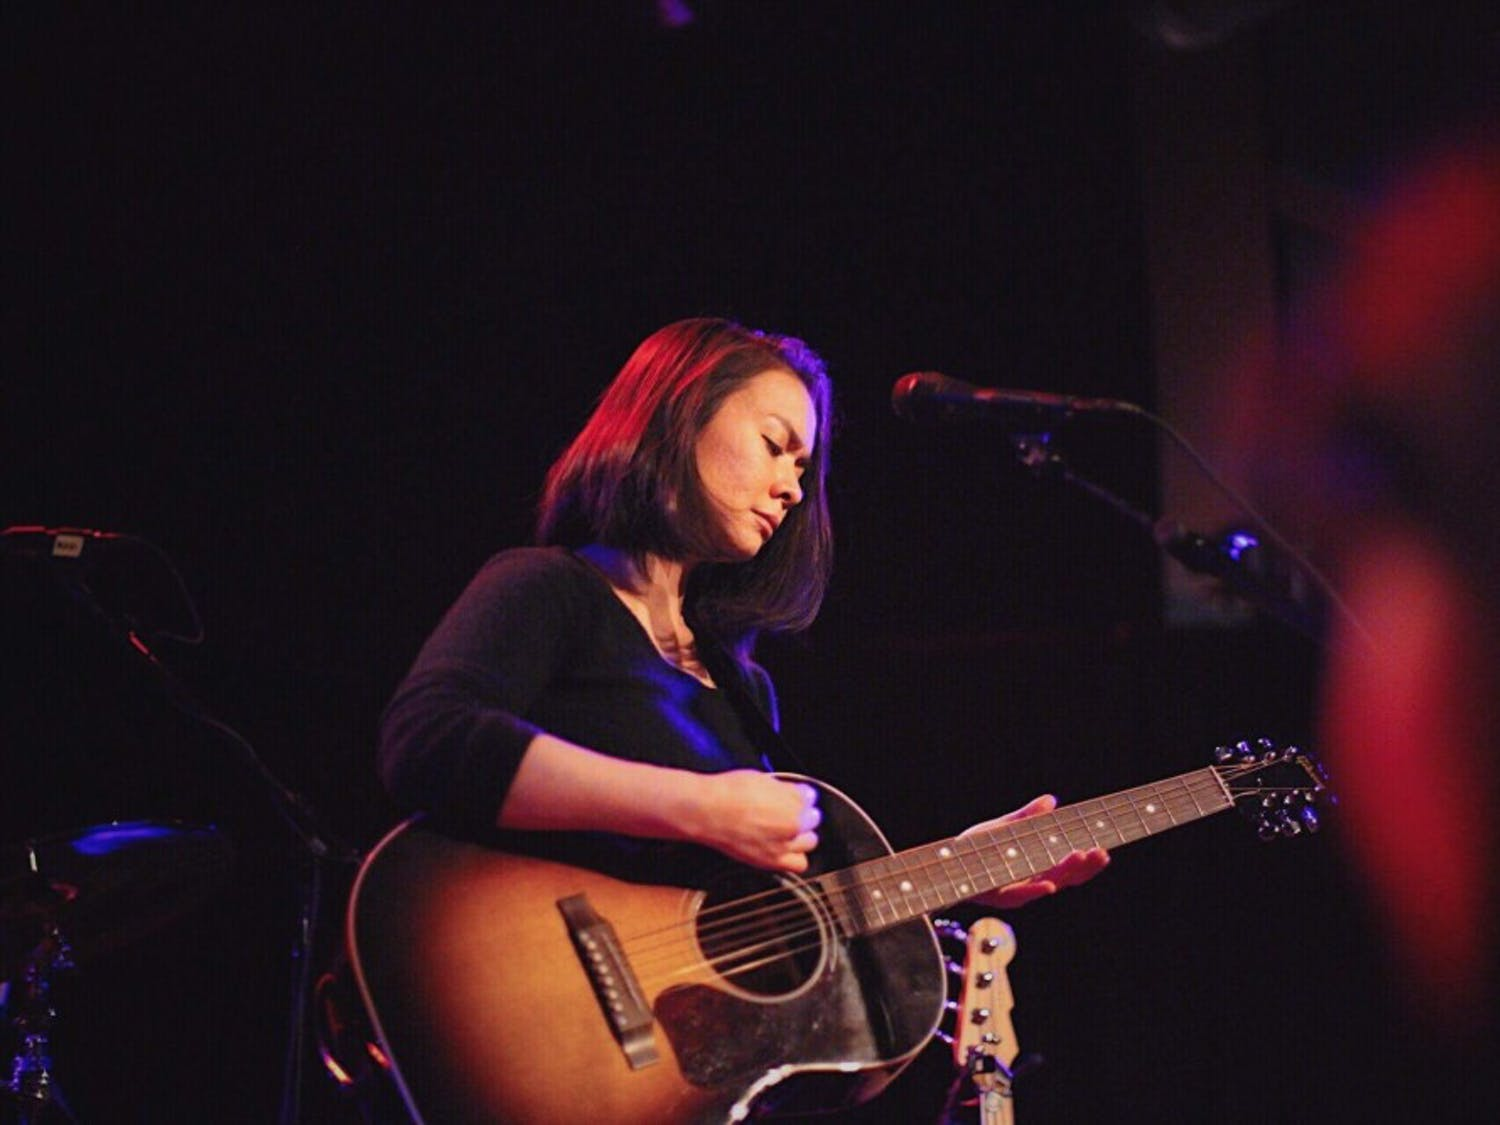 Mitski's gentle yet striking voicestirred the emotions of concertgoers at the High Noon Saloon last week.